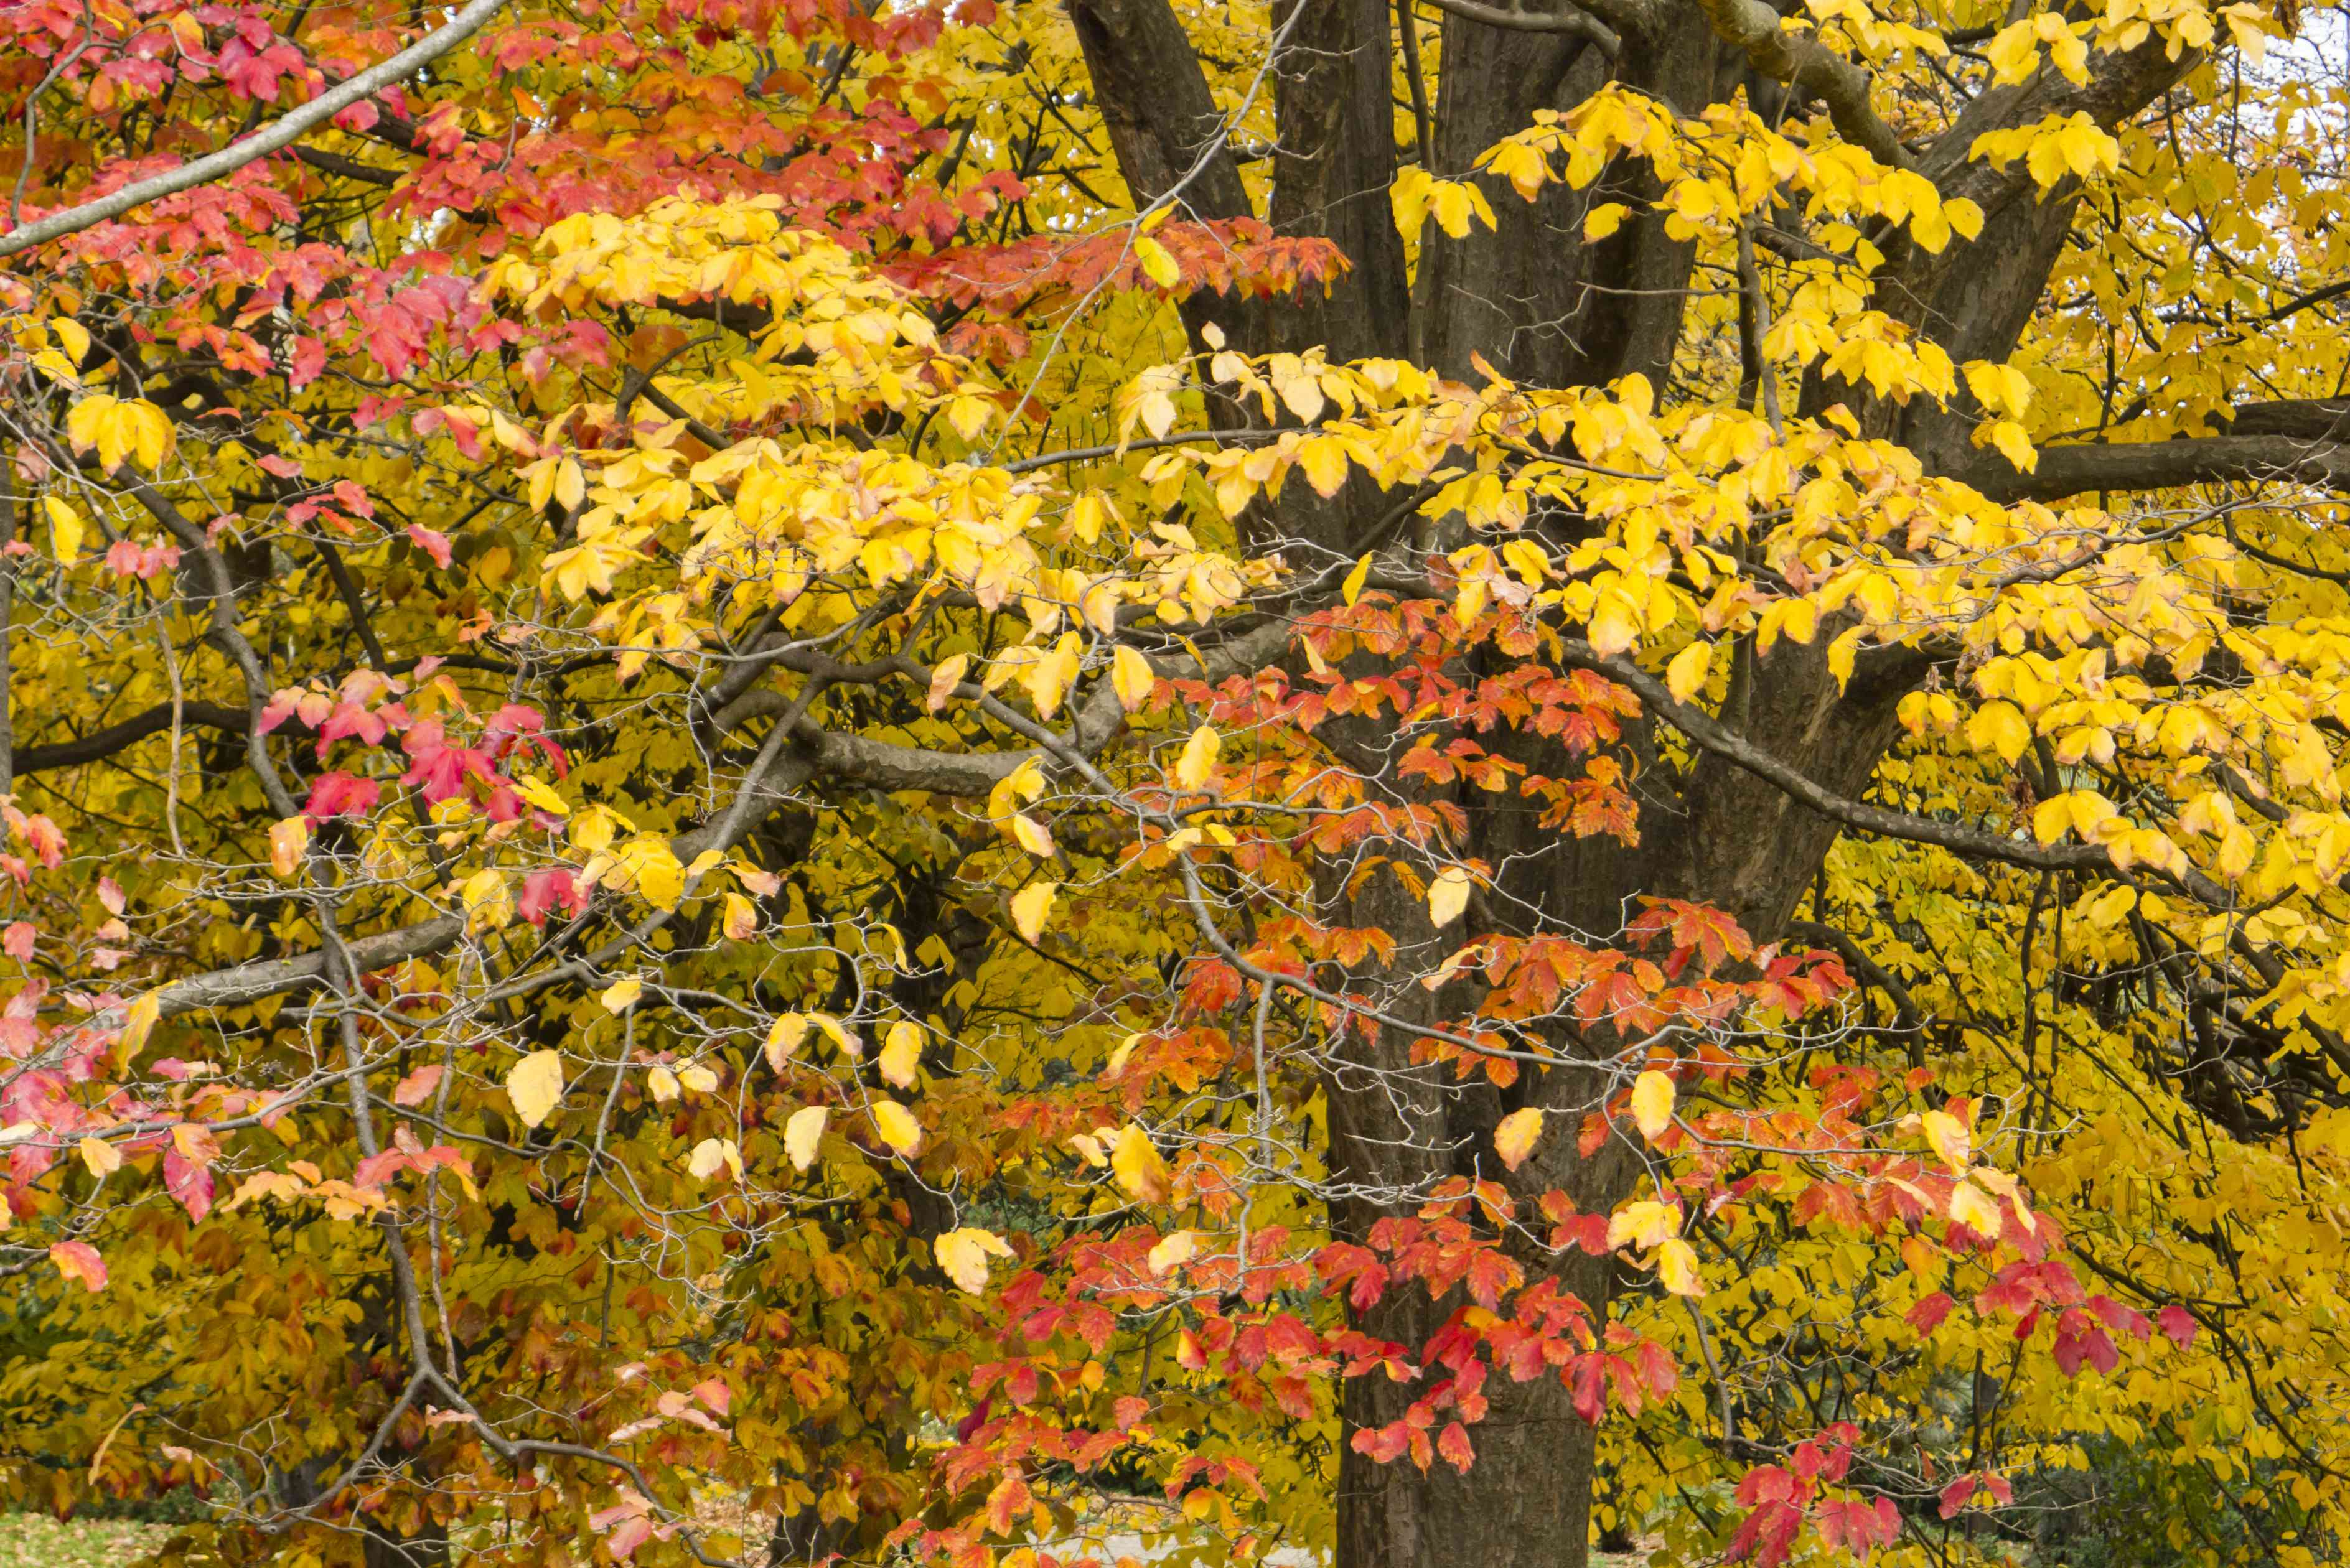 Persian ironwood tree with autumnal leaves